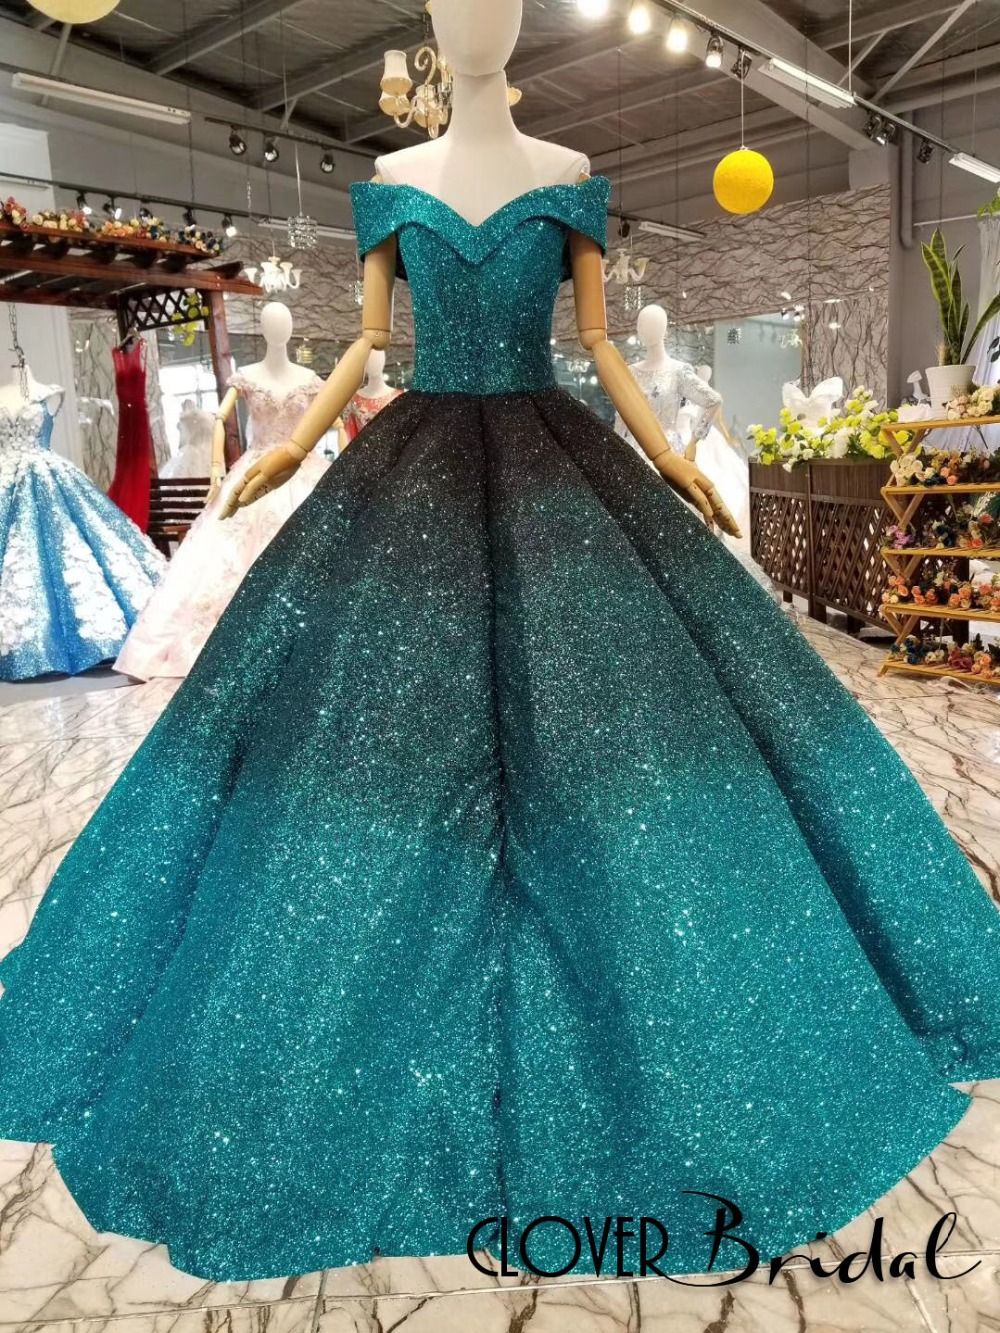 us $279.0 |cloverbridal ball gown puffy skirt floor length off the shoulder  turquoise black two tones glitter wedding dress 2018 latest-in wedding